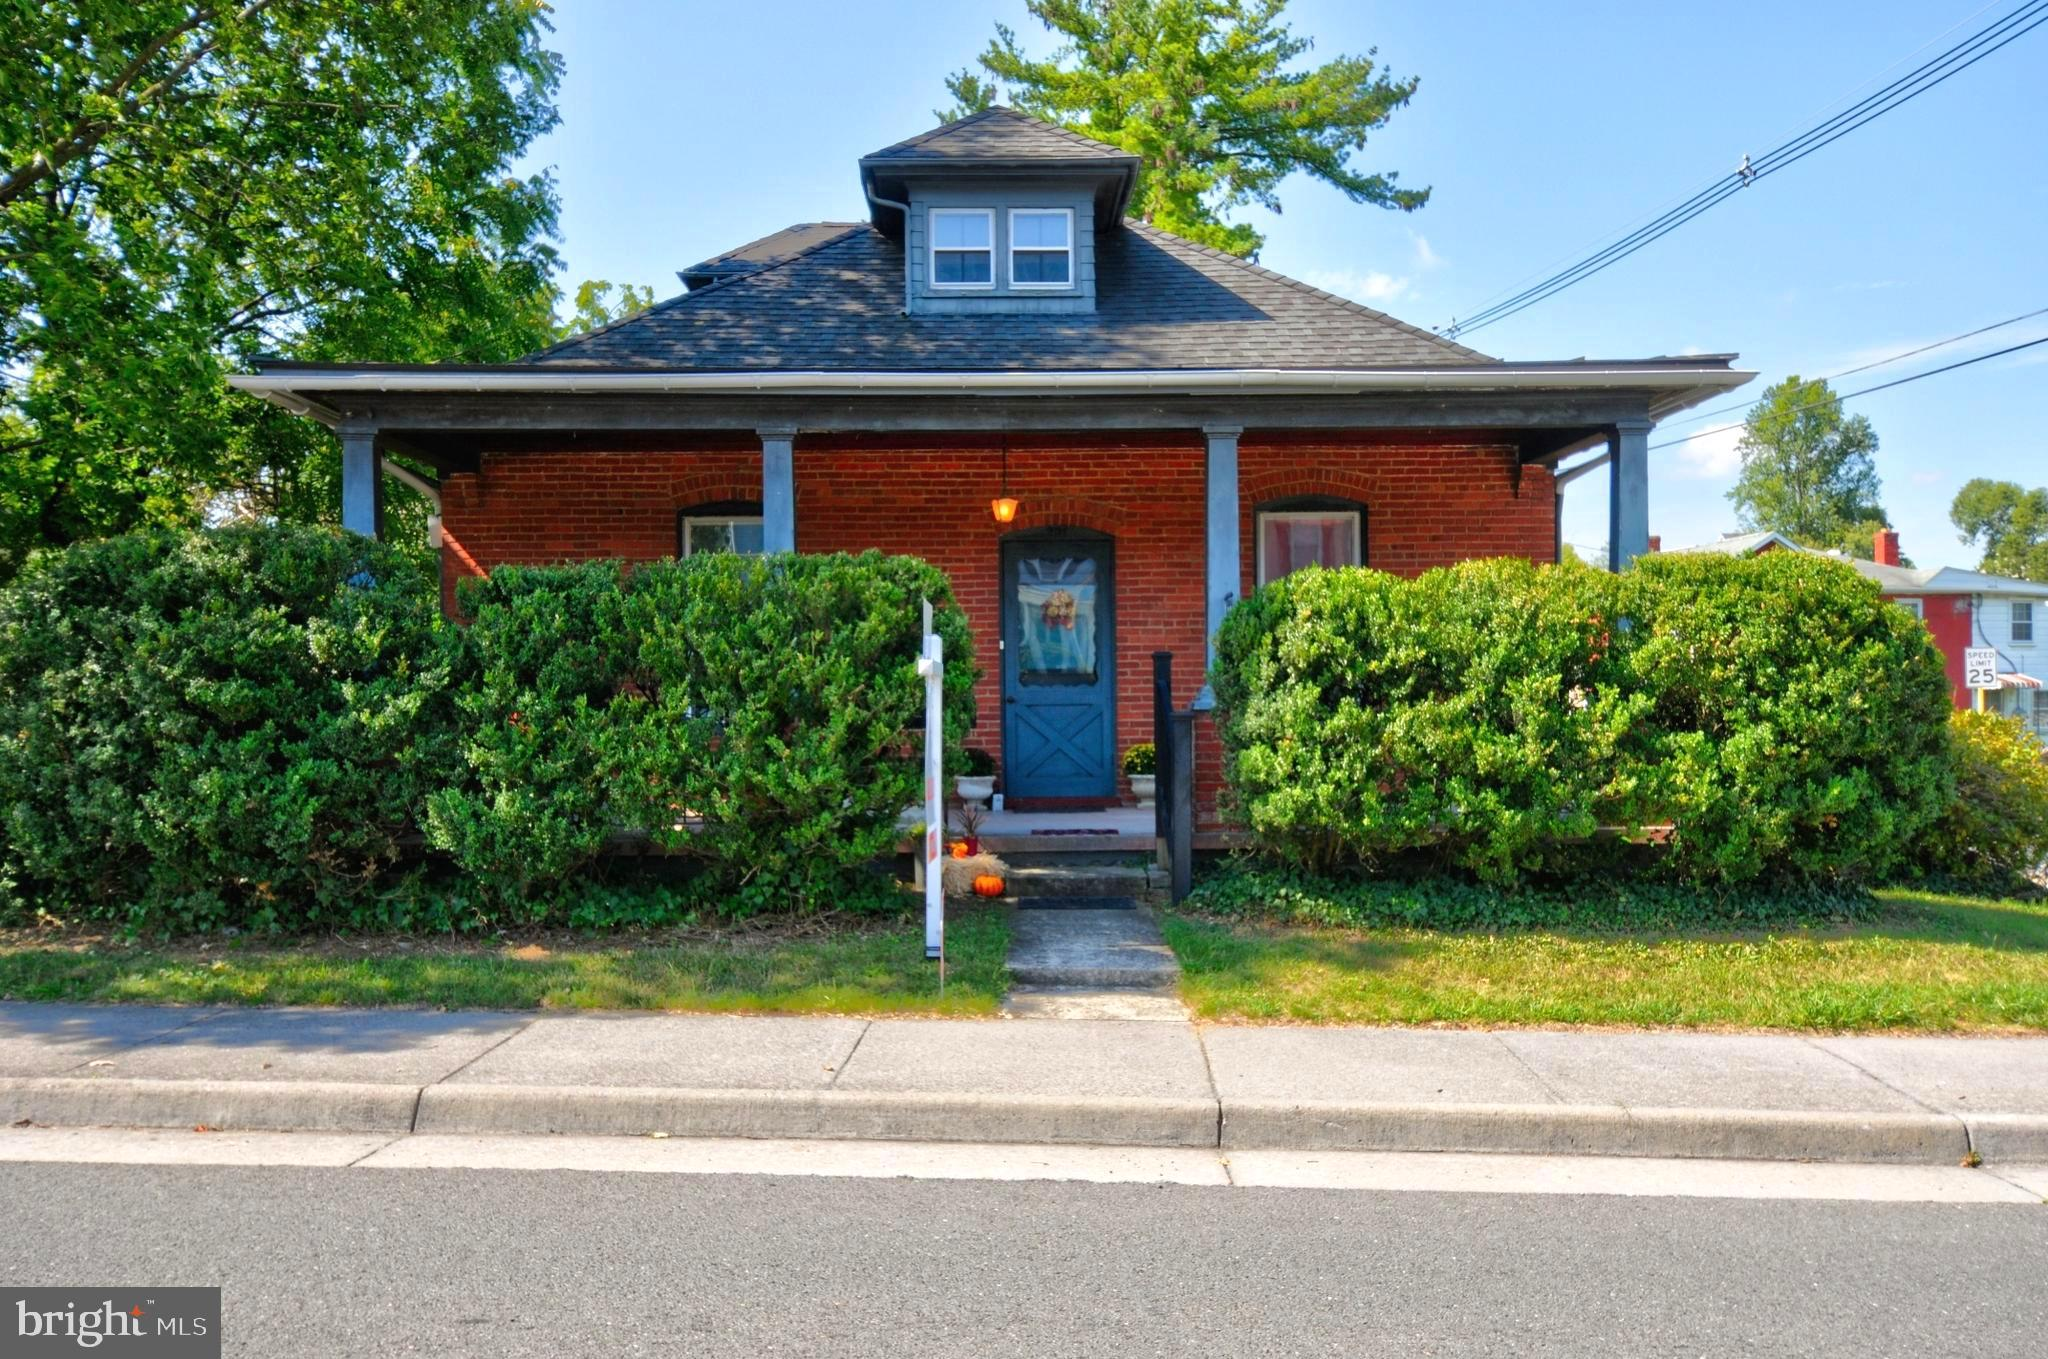 In Real Estate, Location is EVERYTHING and this house doesn't disappoint. Located on Main St and Lin